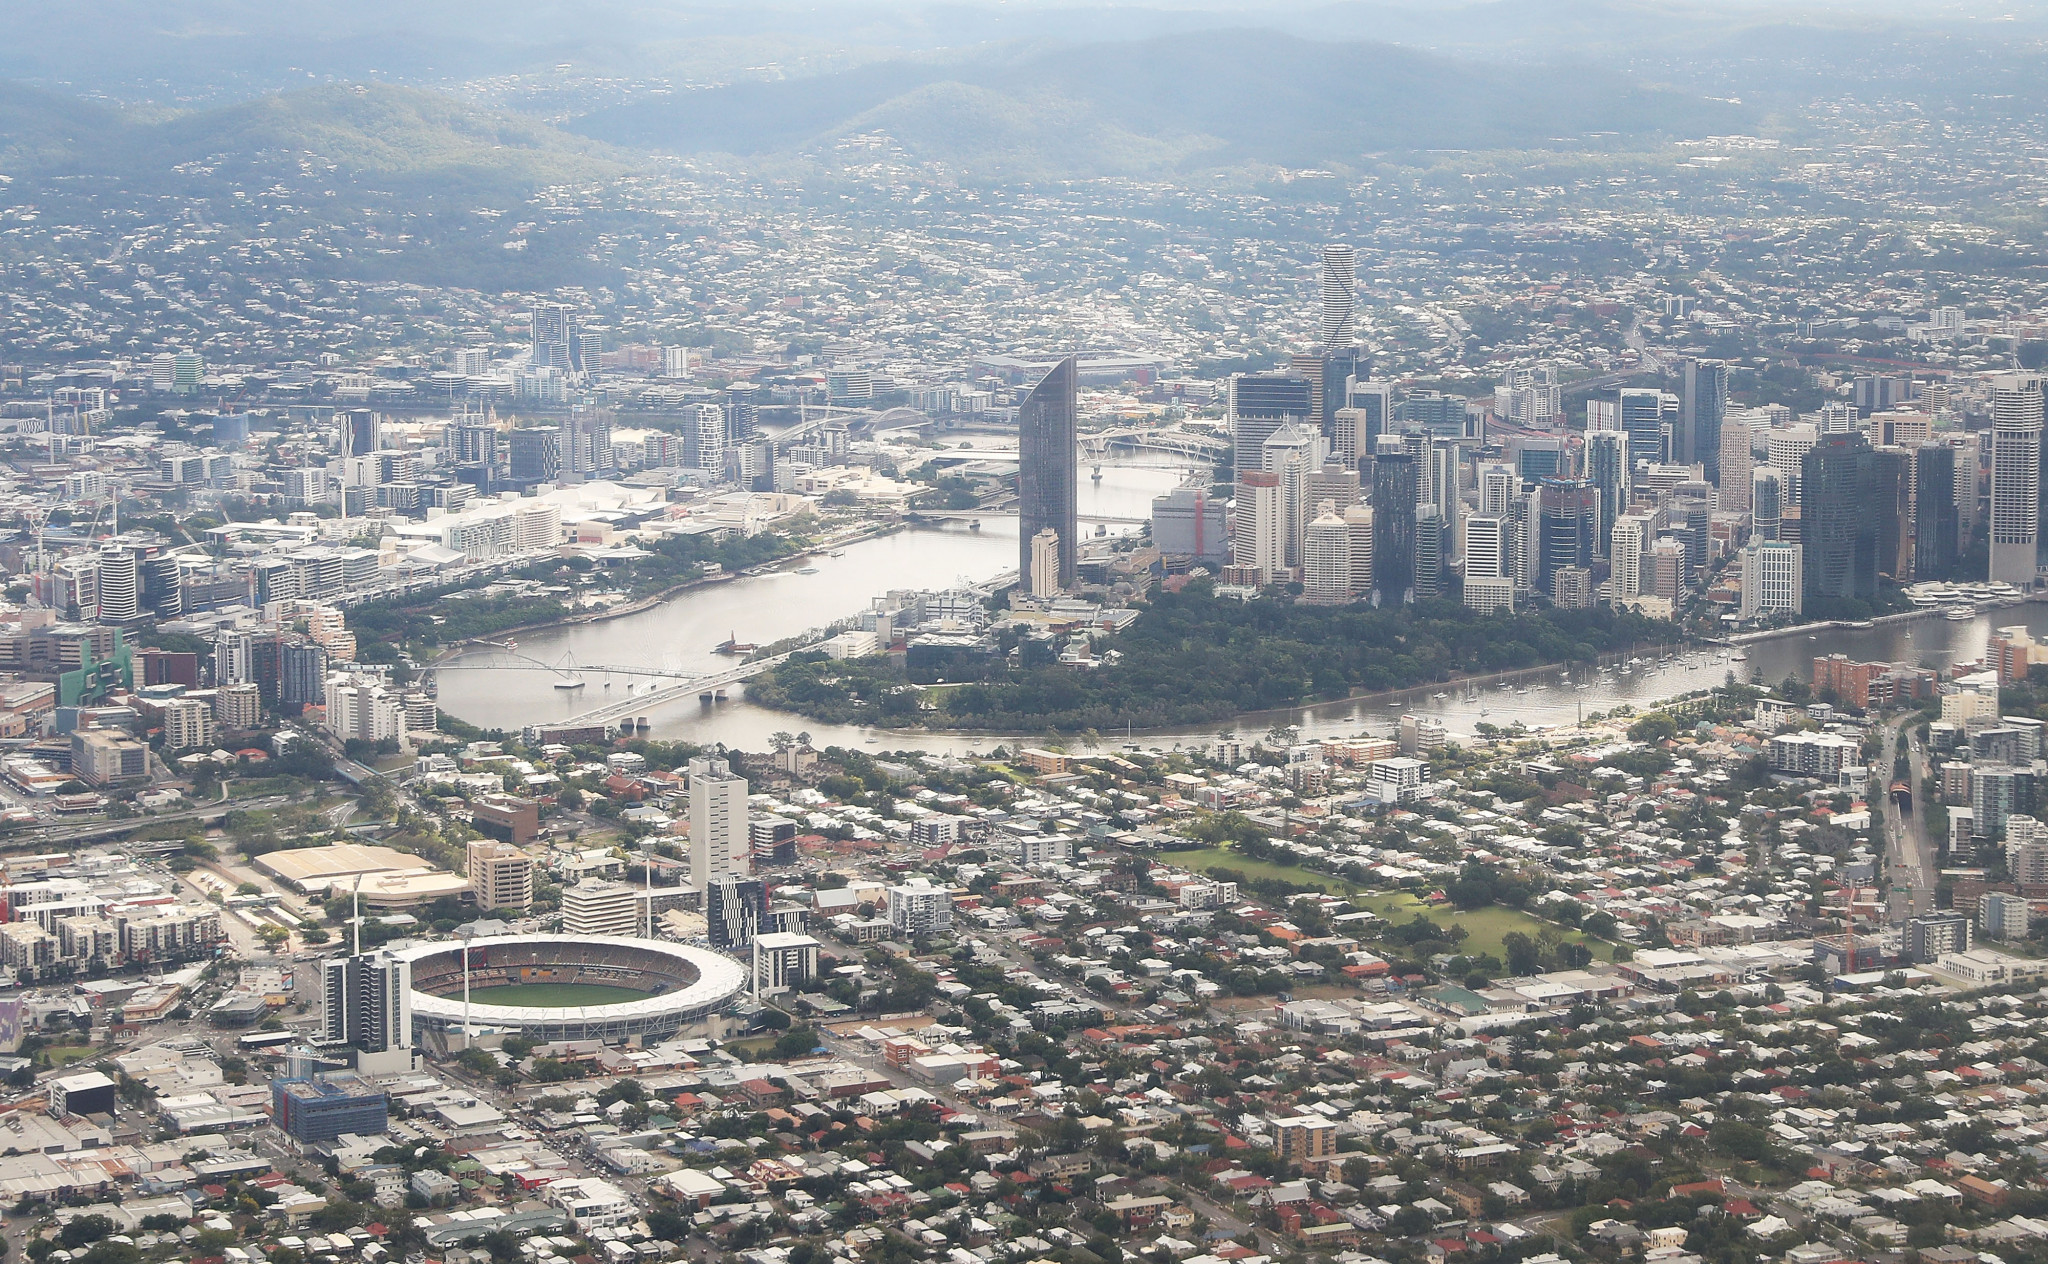 Brisbane is set to host the 2032 Olympics ©Getty Images